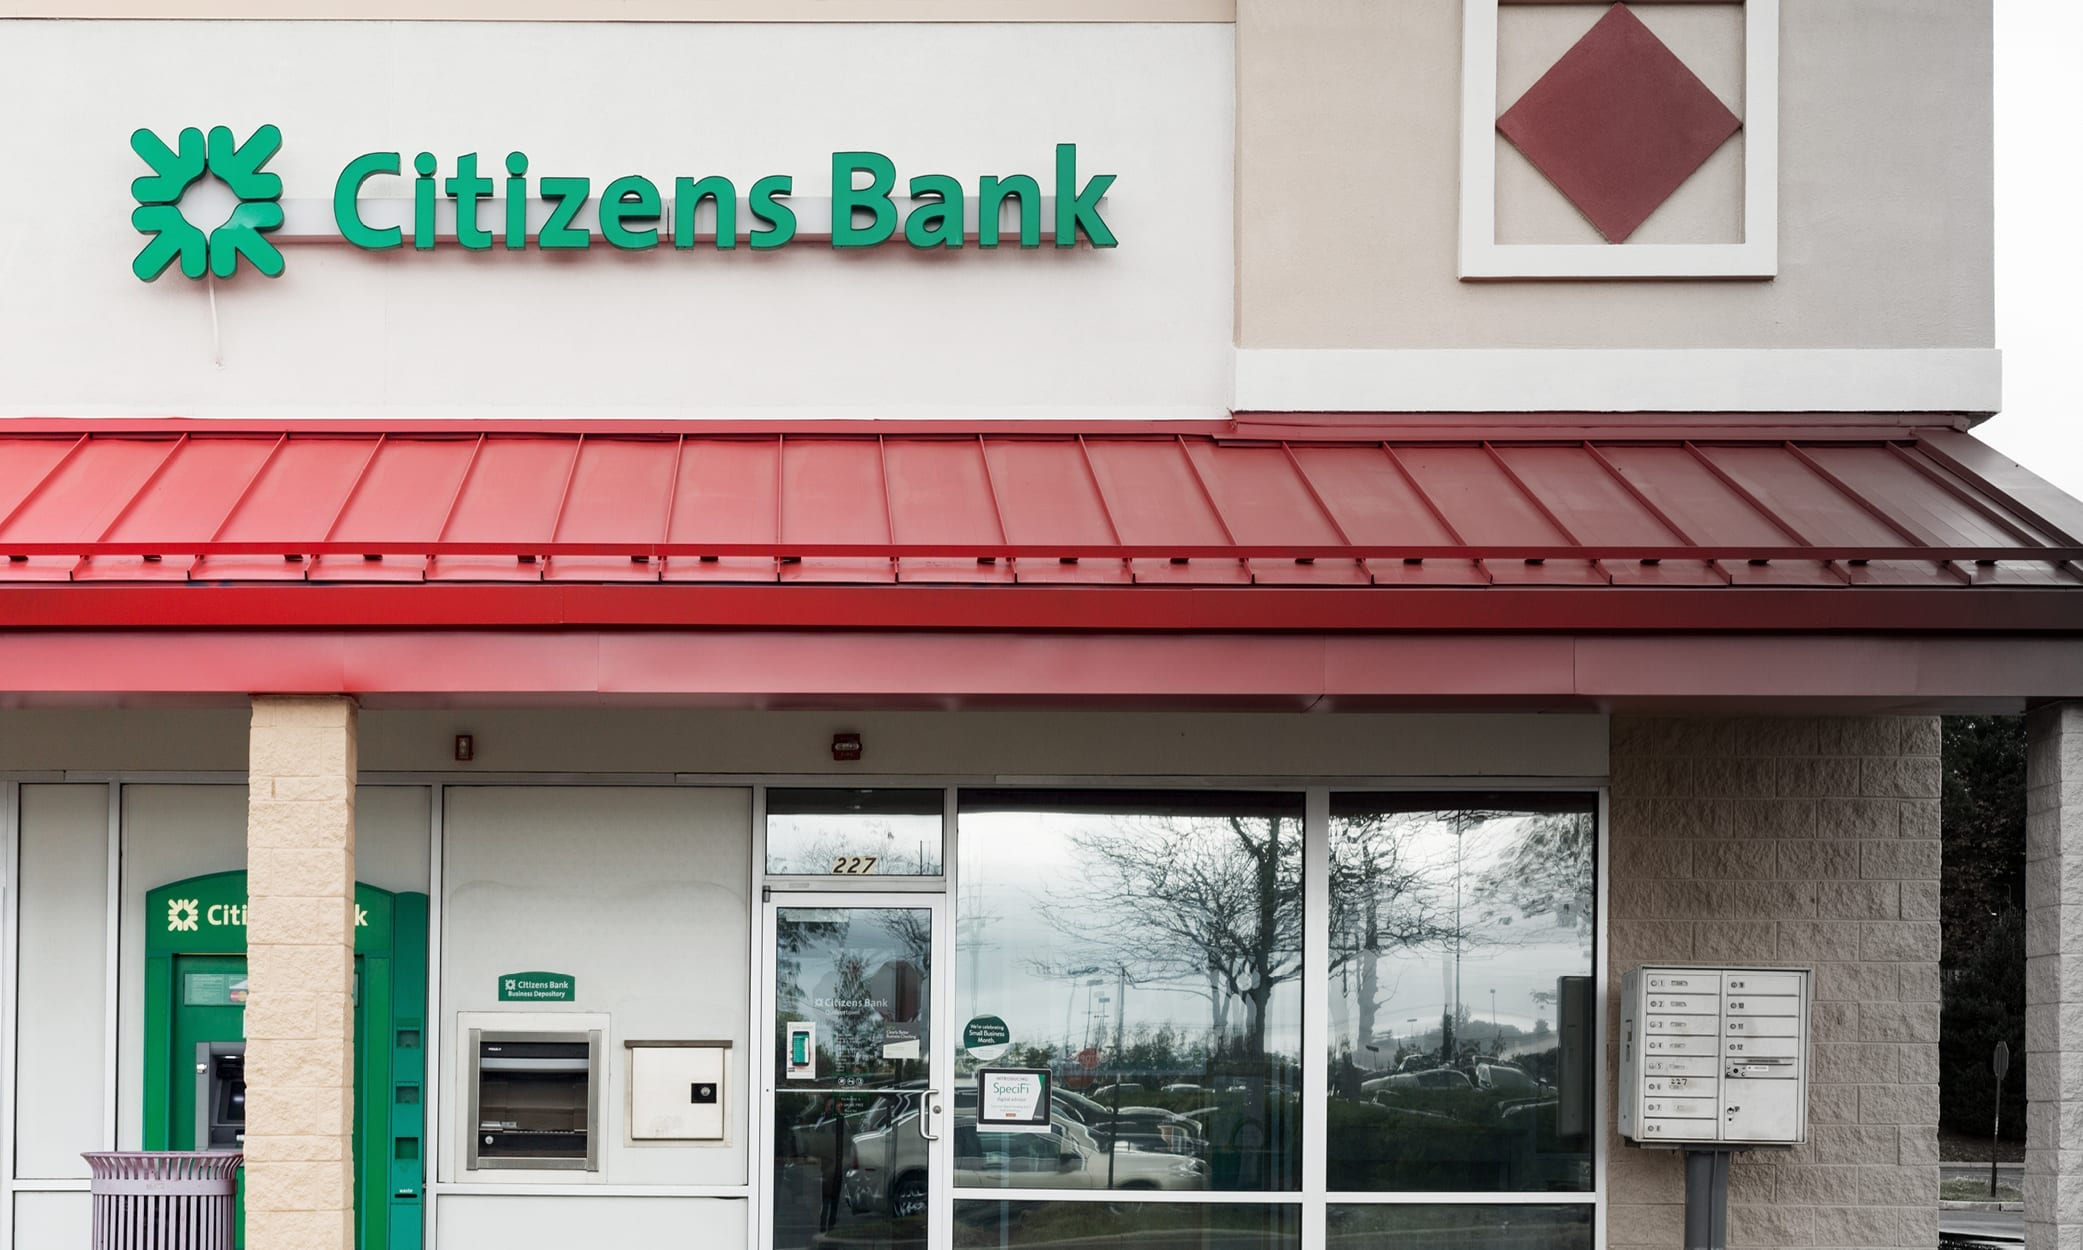 Citizens Bank faces legislation from the CFPB.